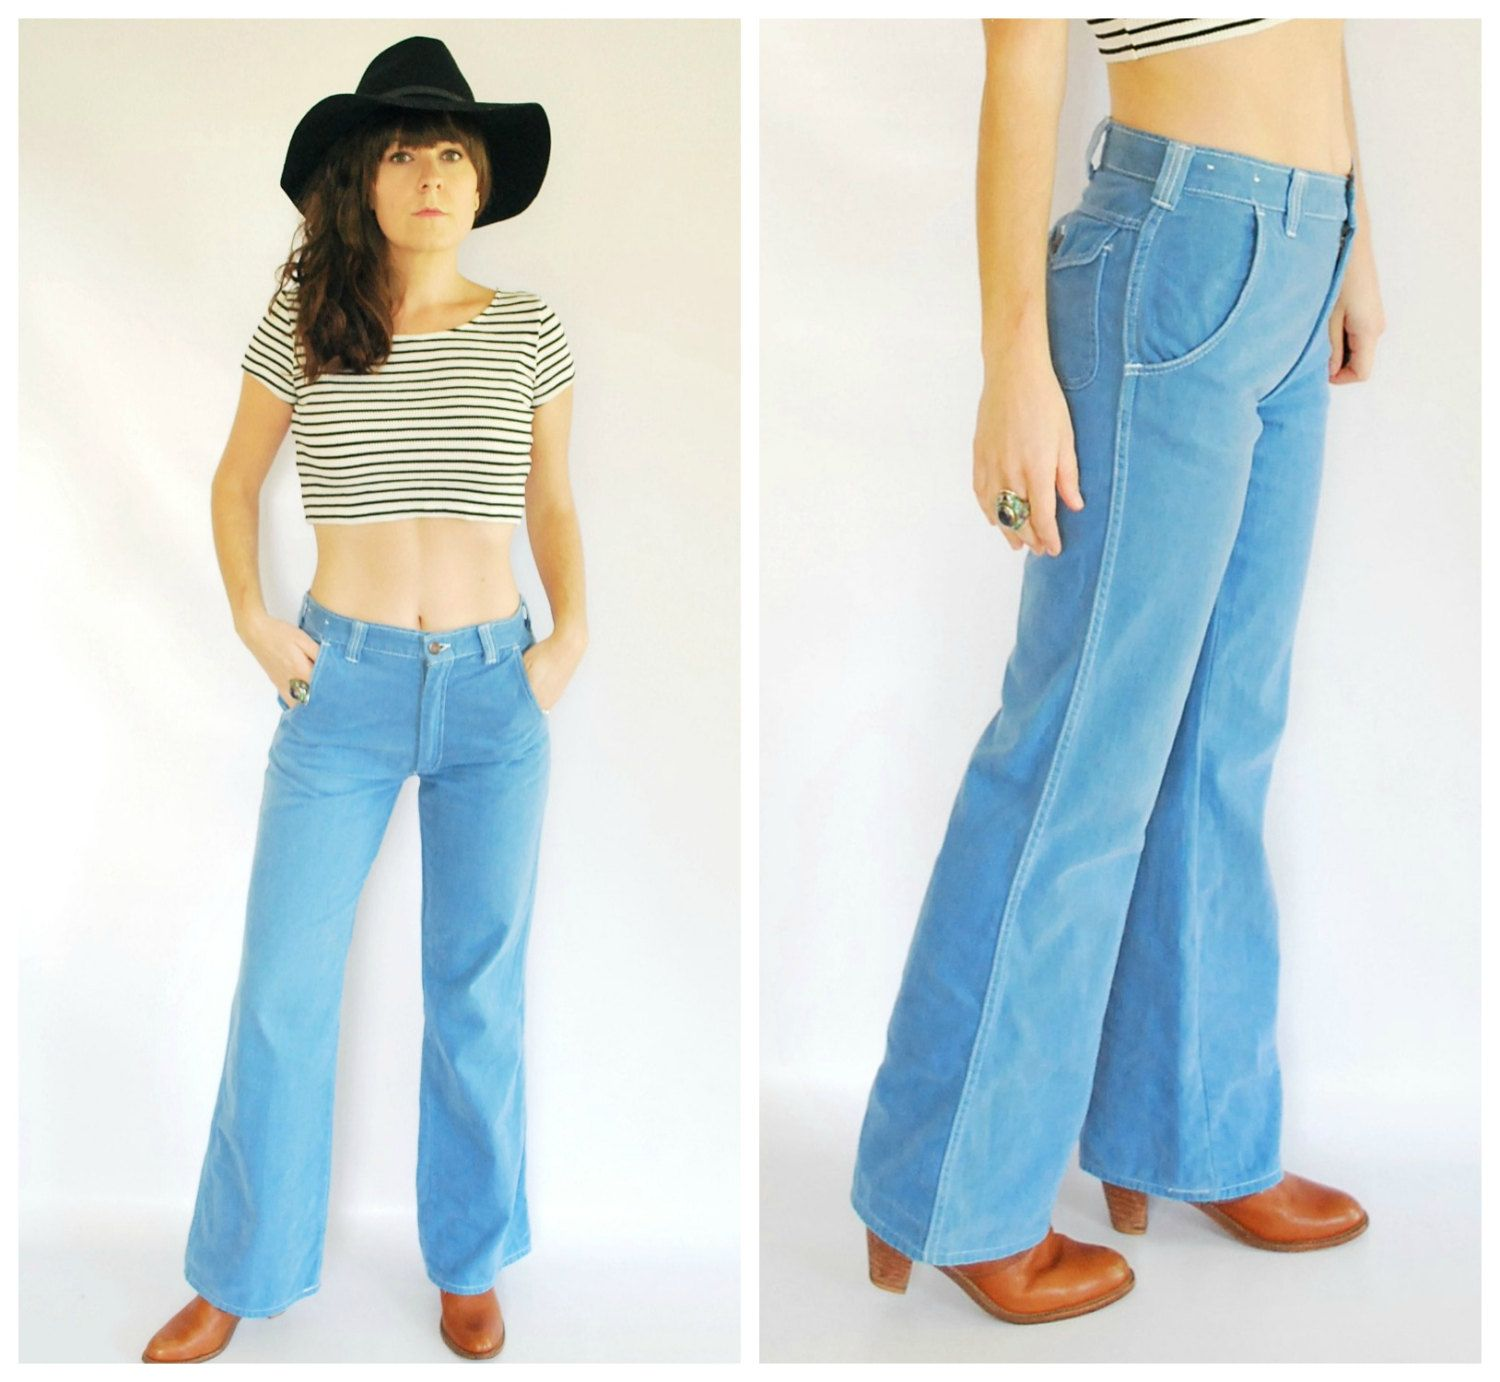 "60's Denim Flared Jeans - National Shirt Shops Pants - 28"" Waist by GoodSoulVintageMI on Etsy"